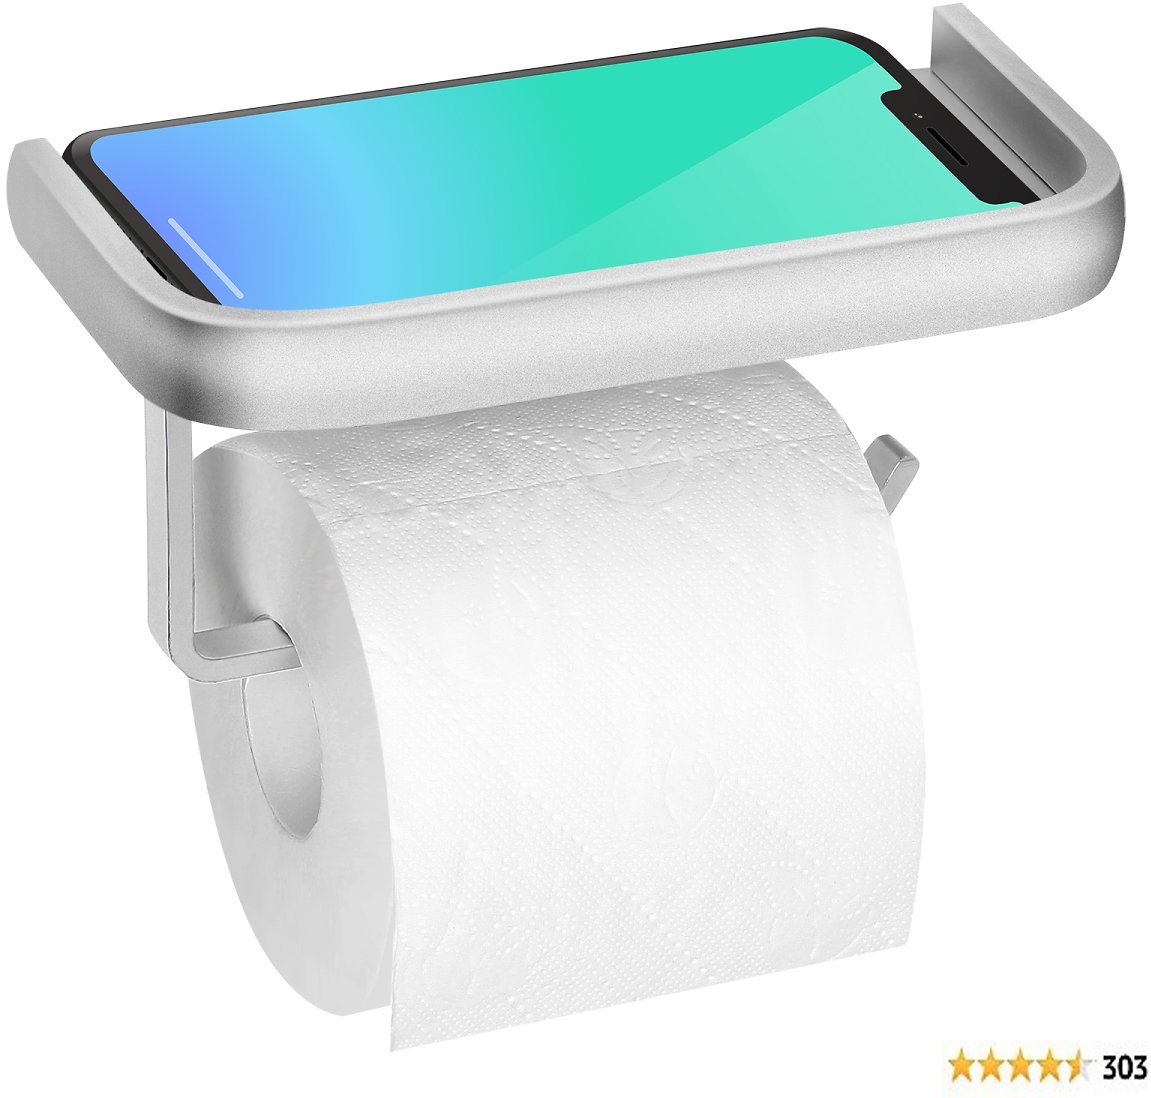 Toilet Paper Holder with Shelf, Aluminum Toilet Roll Holder with Phone Shelf, Wall Mounted Bathroom Tissue Holder